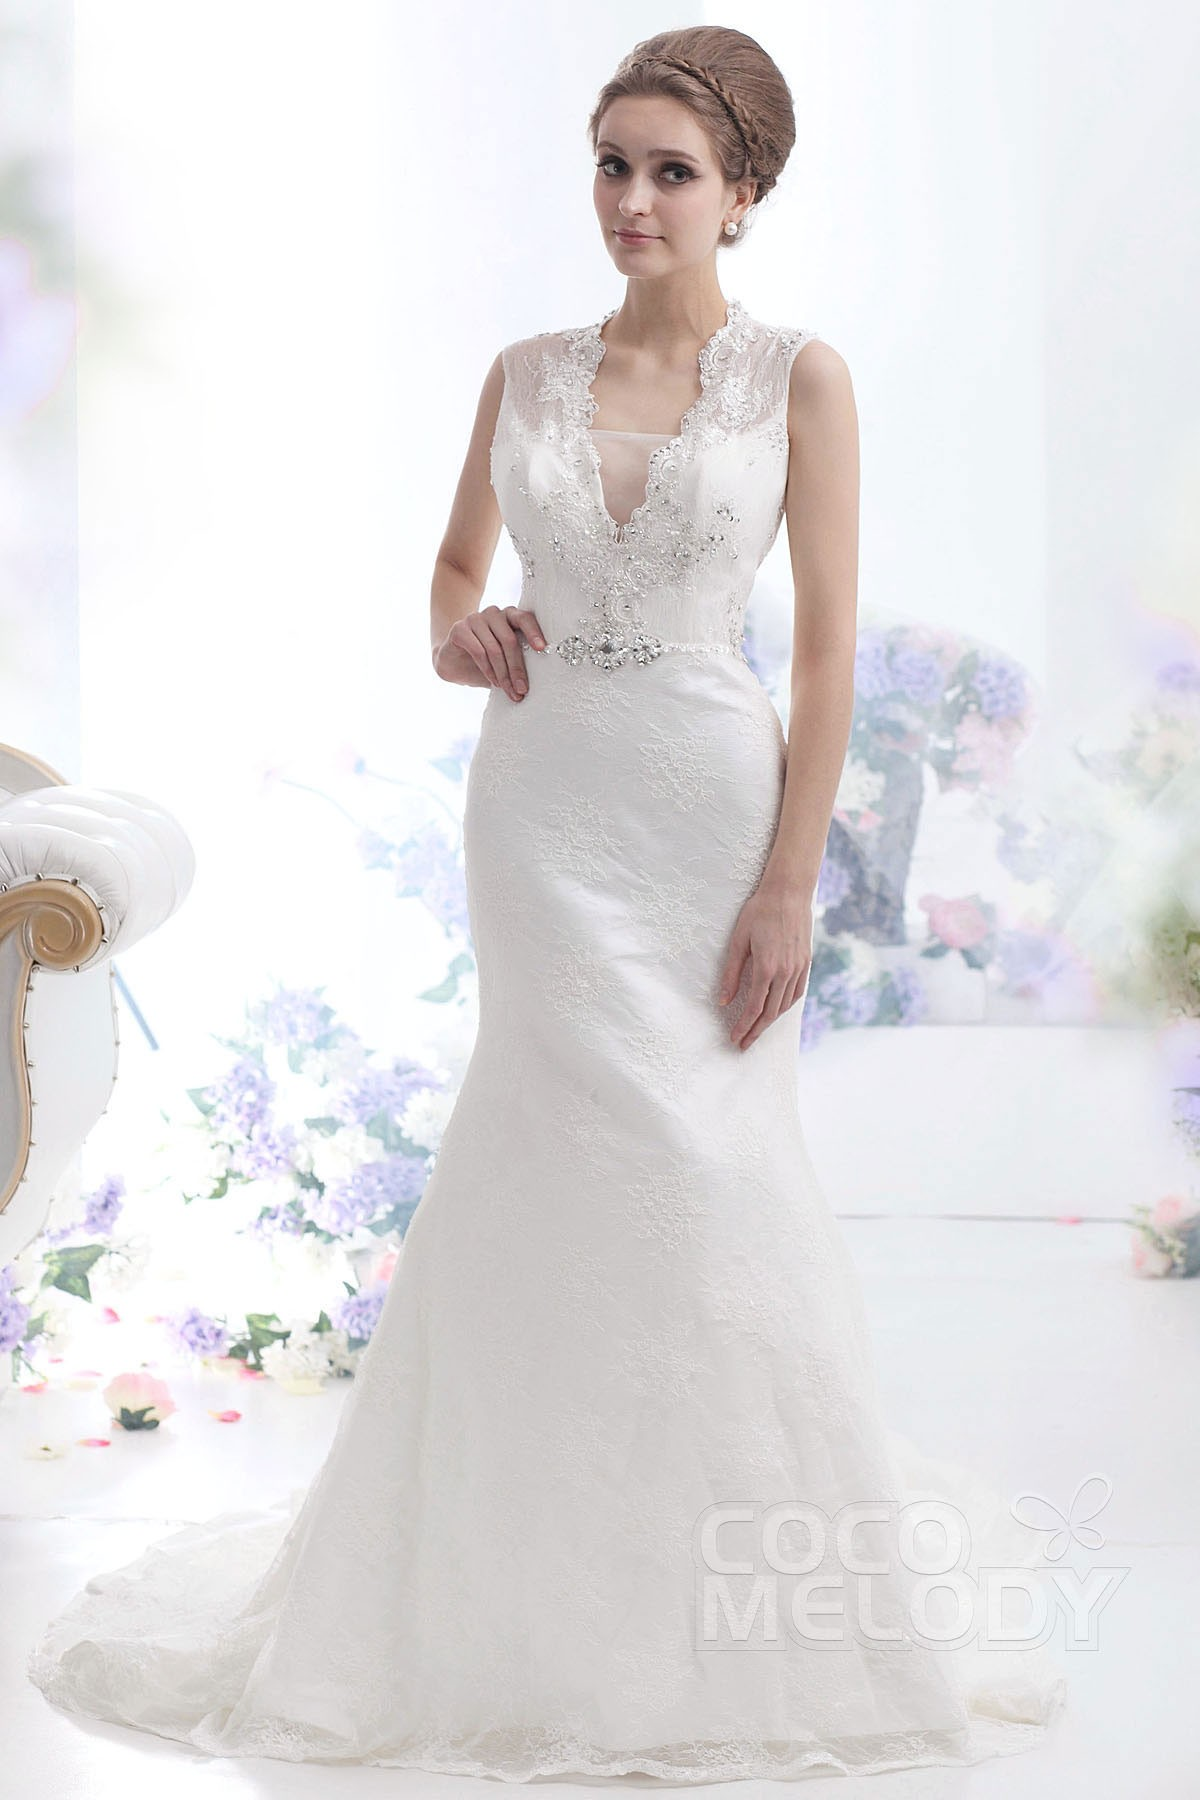 Trumpet-Mermaid Court Train Lace Wedding Dress CWKT13005 | Cocomelody